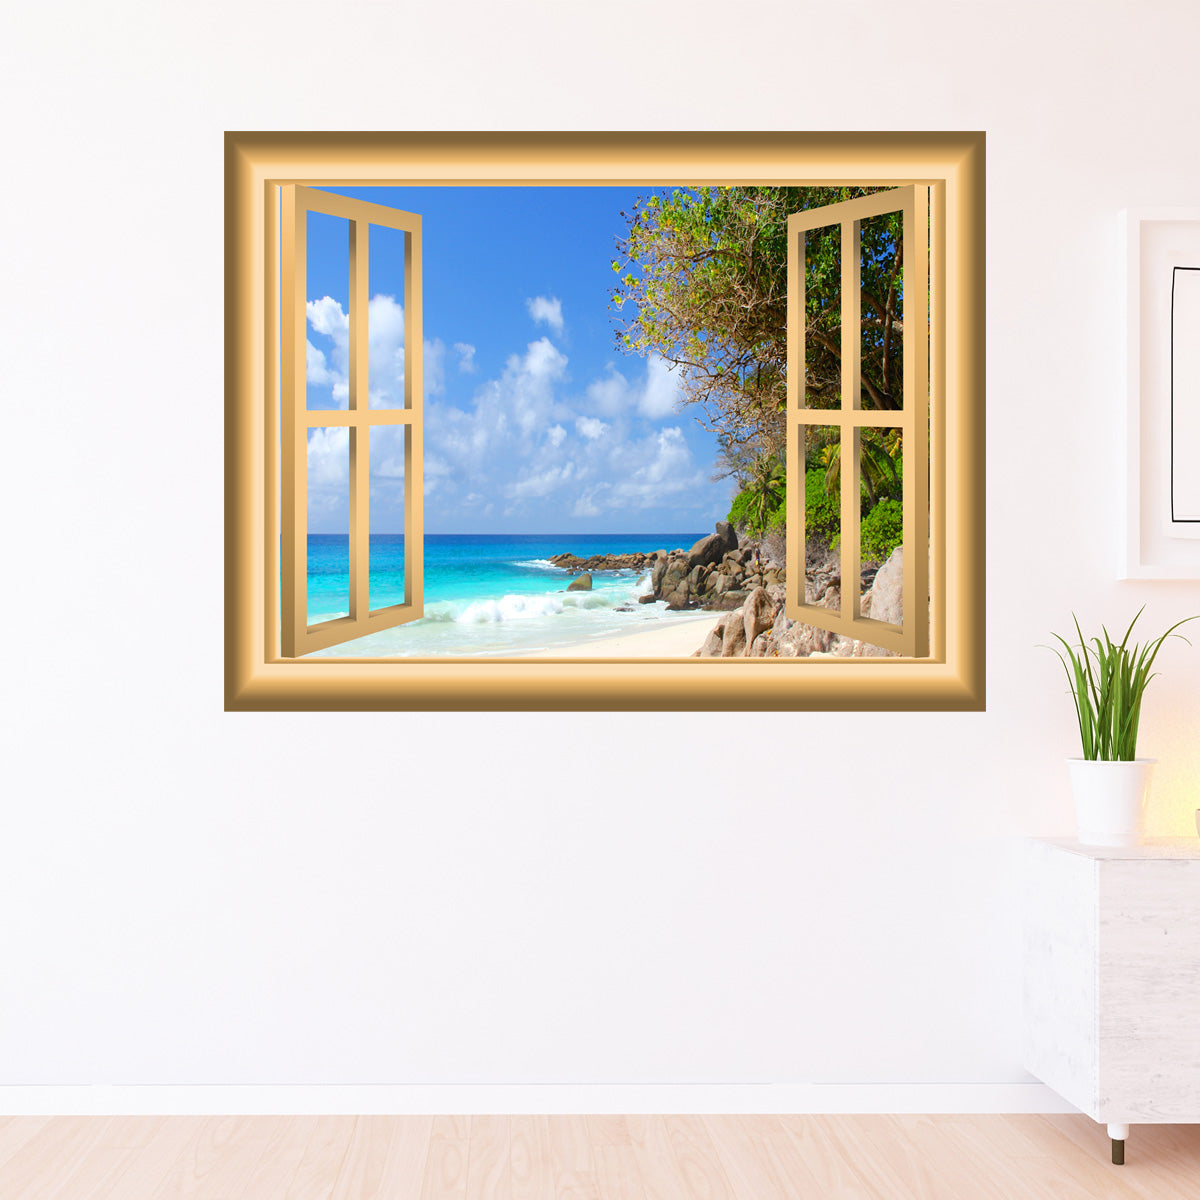 VWAQ Coastline Beach Scene Peel and Stick Window Frame Wall Decal - NW81 - VWAQ Vinyl Wall Art Quotes and Prints